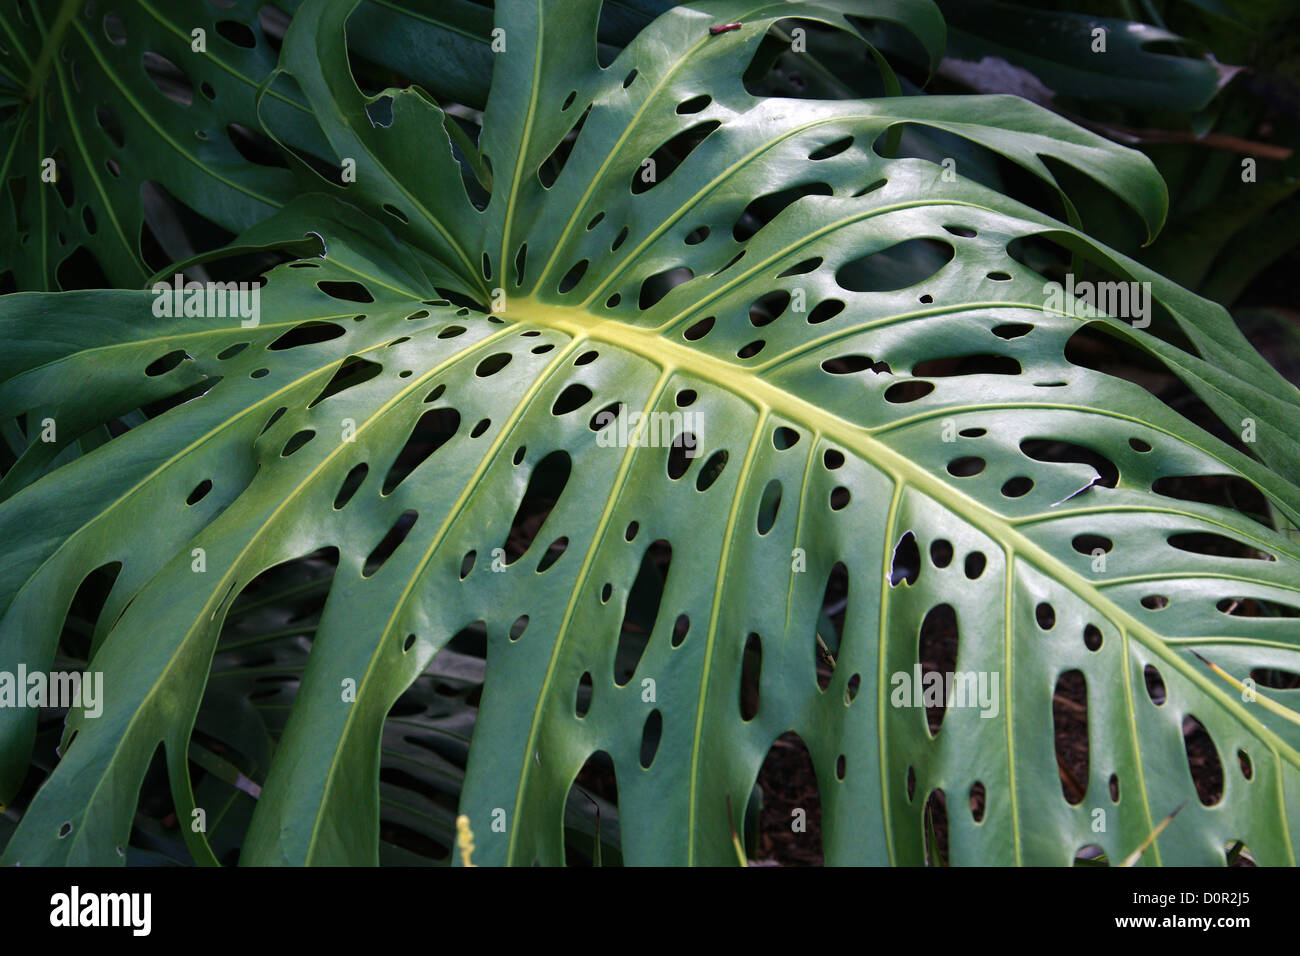 A Leaf of the Swiss Cheese Plant, Monstera deliciosa, Araceae. Central America. - Stock Image